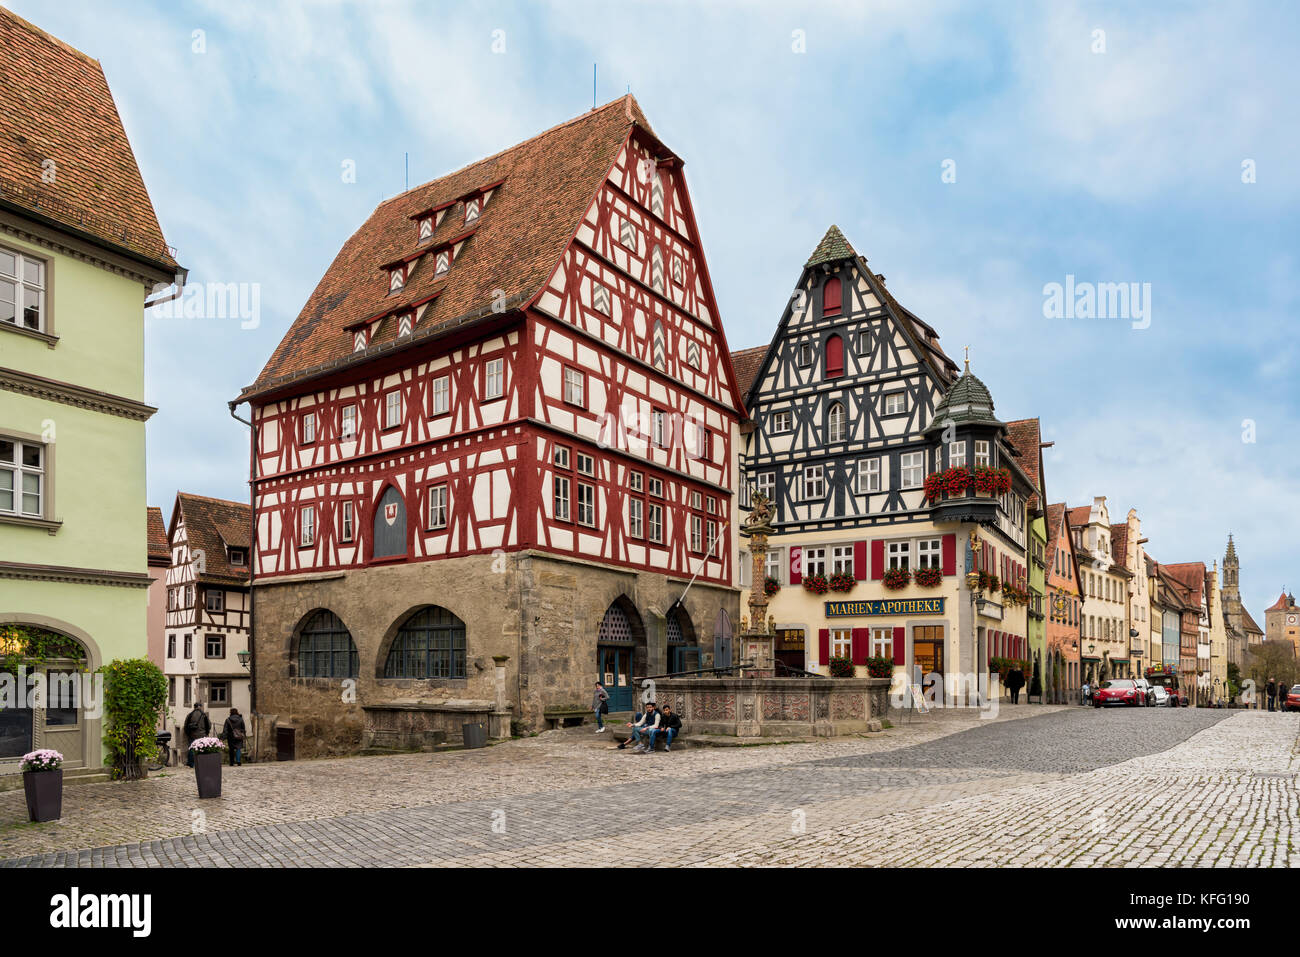 ROTHENBURG, GERMANY - OCTOBER 24, 2017: Unidentified tourists stroll along the historic main road or take a break - Stock Image